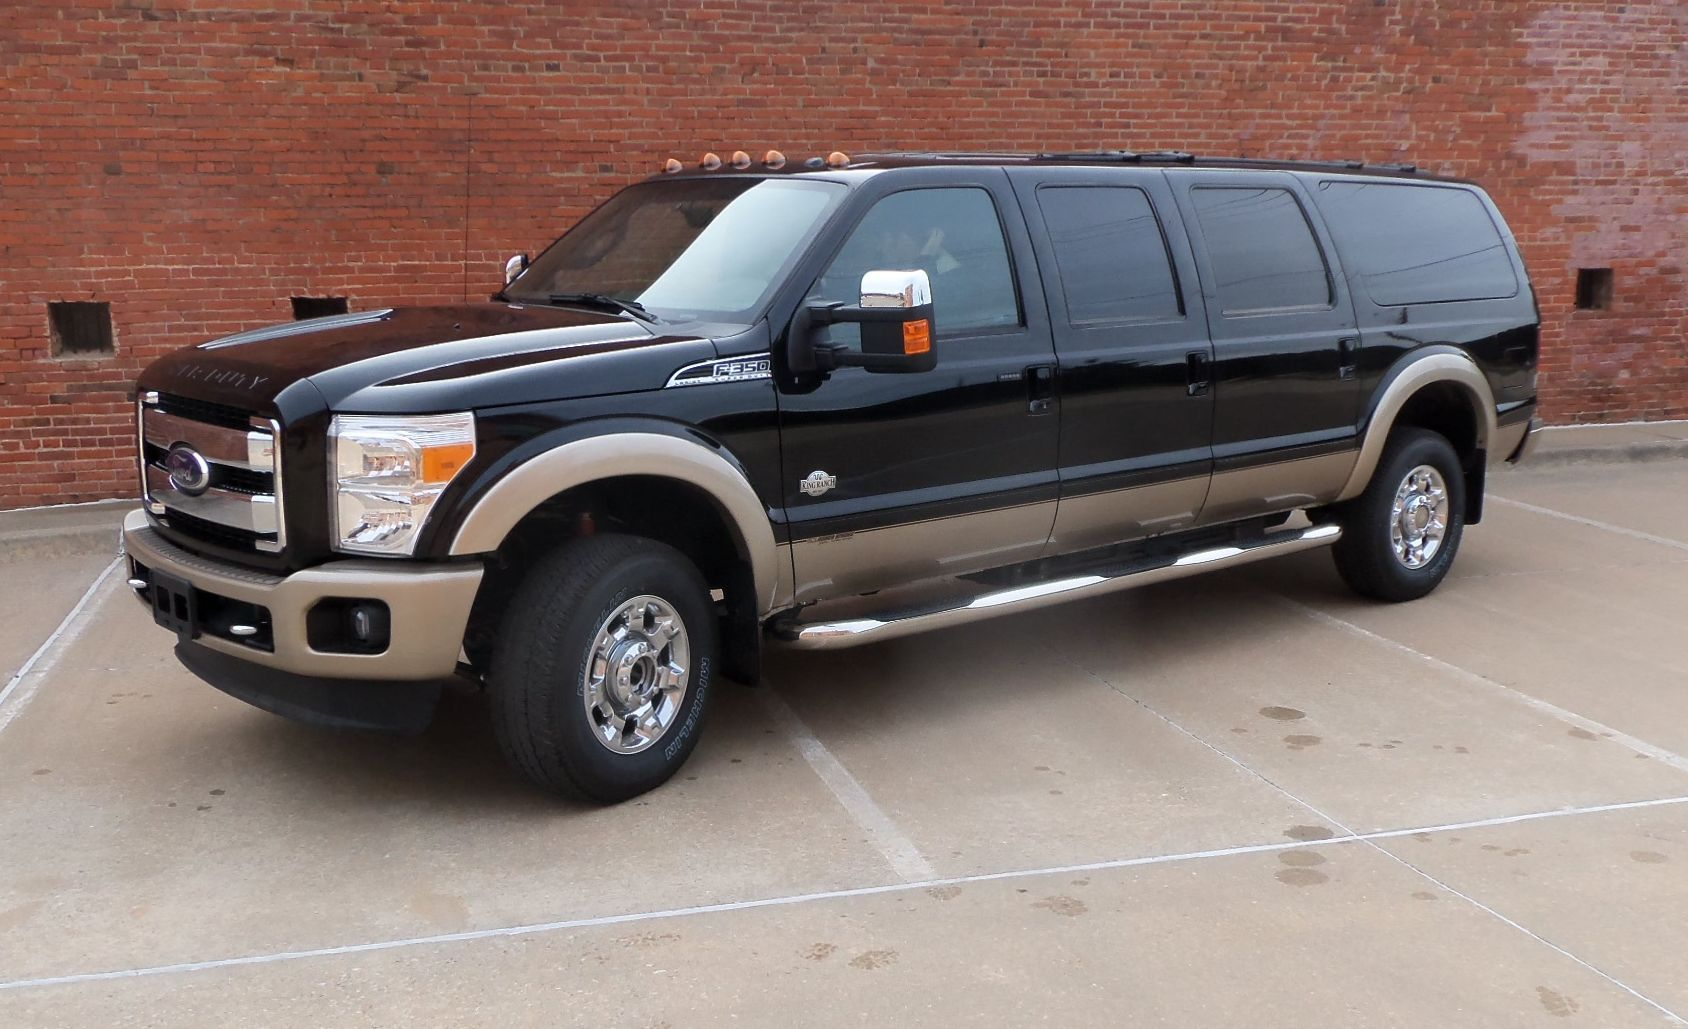 2012 Ford Excursion King Ranch Ford Excursion Ford Excursion